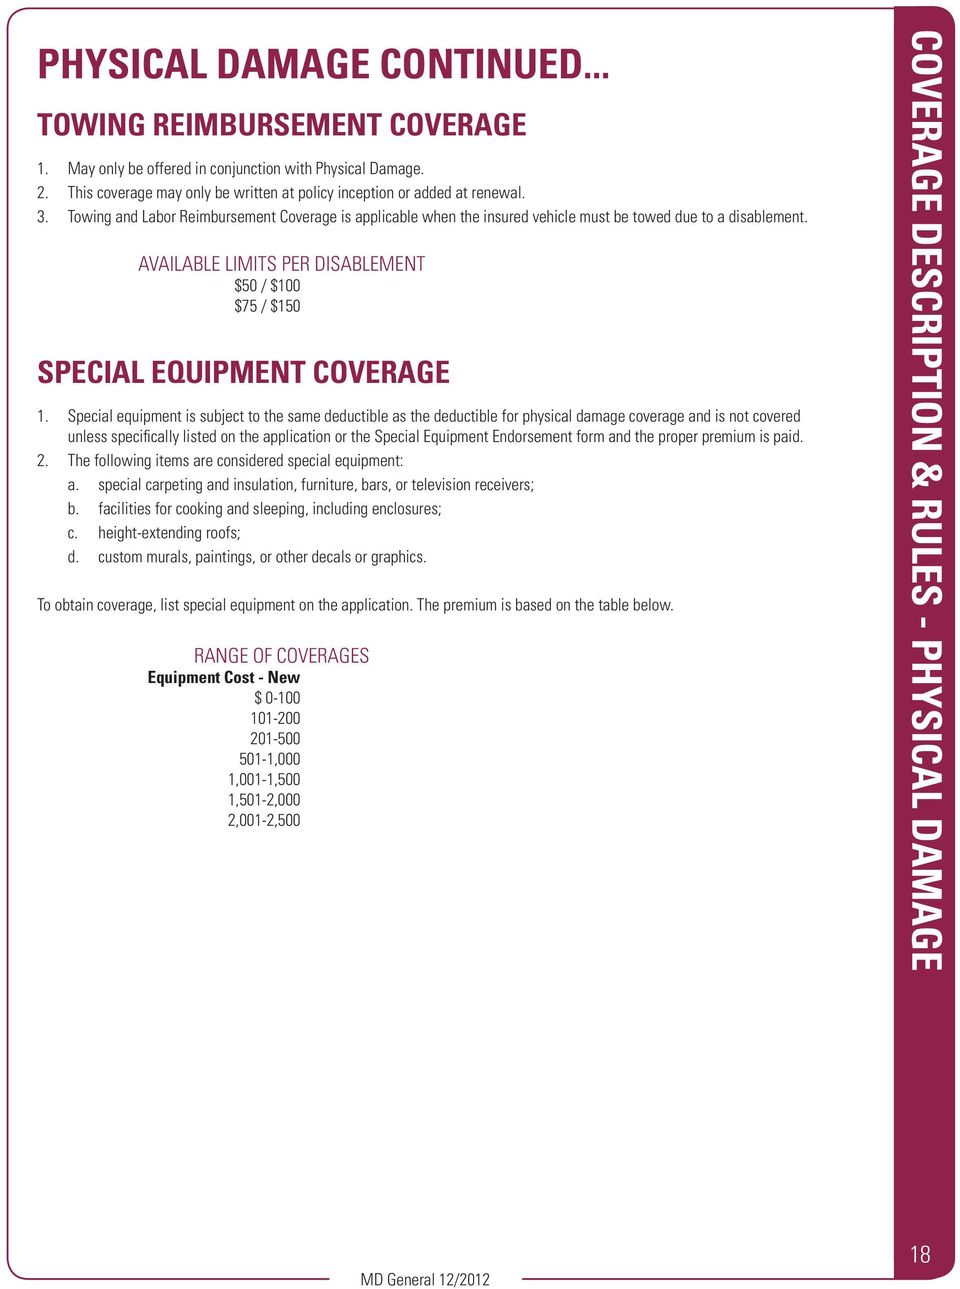 Special equipment is subject to the same deductible as the deductible for physical damage coverage and is not covered unless specifically listed on the application or the Special Equipment